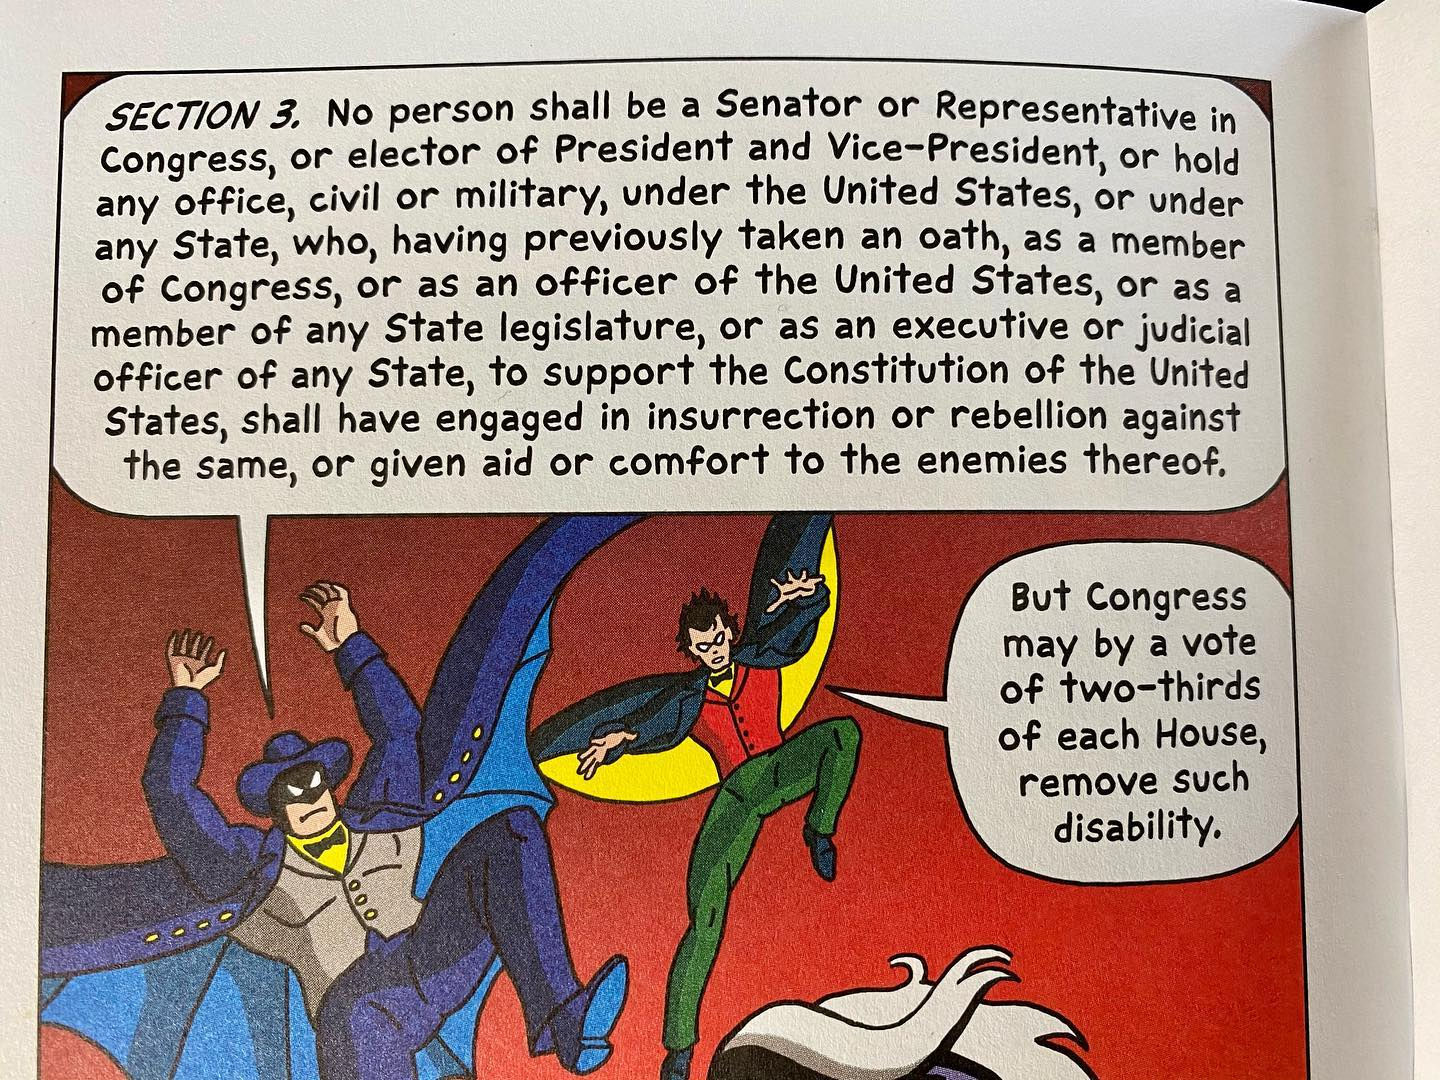 Section 3 of the 14th Amendment disqualifies those who engage in insurrection against the Constitution of the United States from holding office.From Constitution Illustrated by R. Sikoryak.